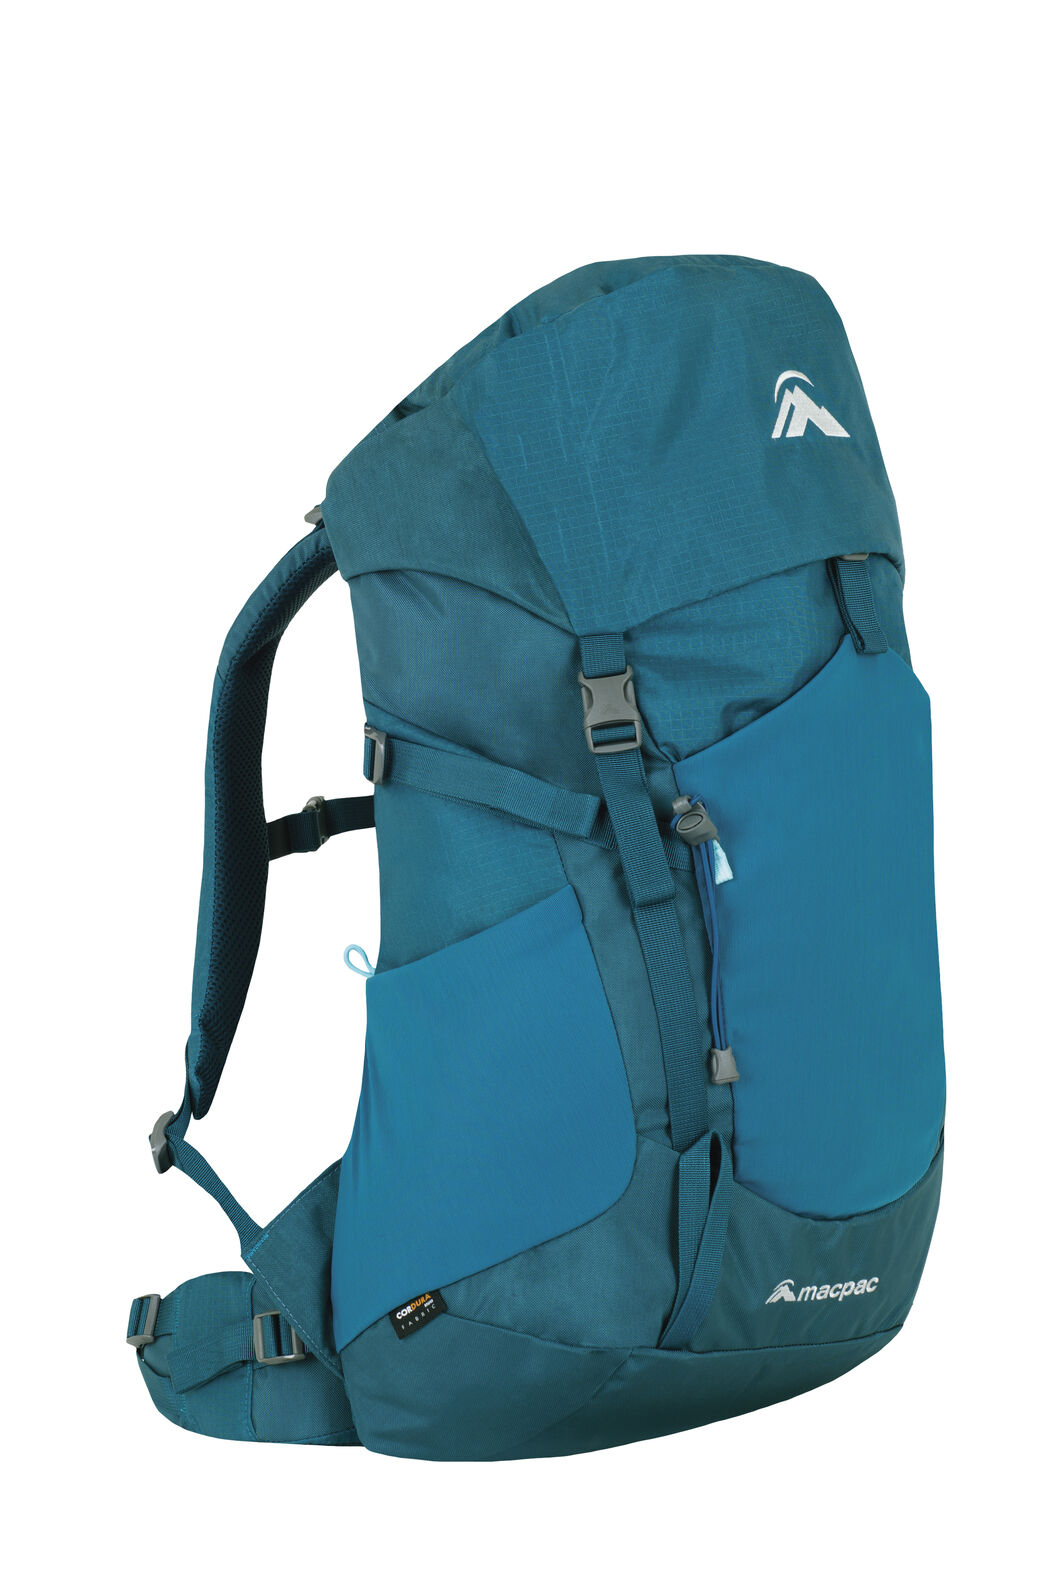 Macpac Torlesse 30L Jr Pack, Ocean Depths, hi-res